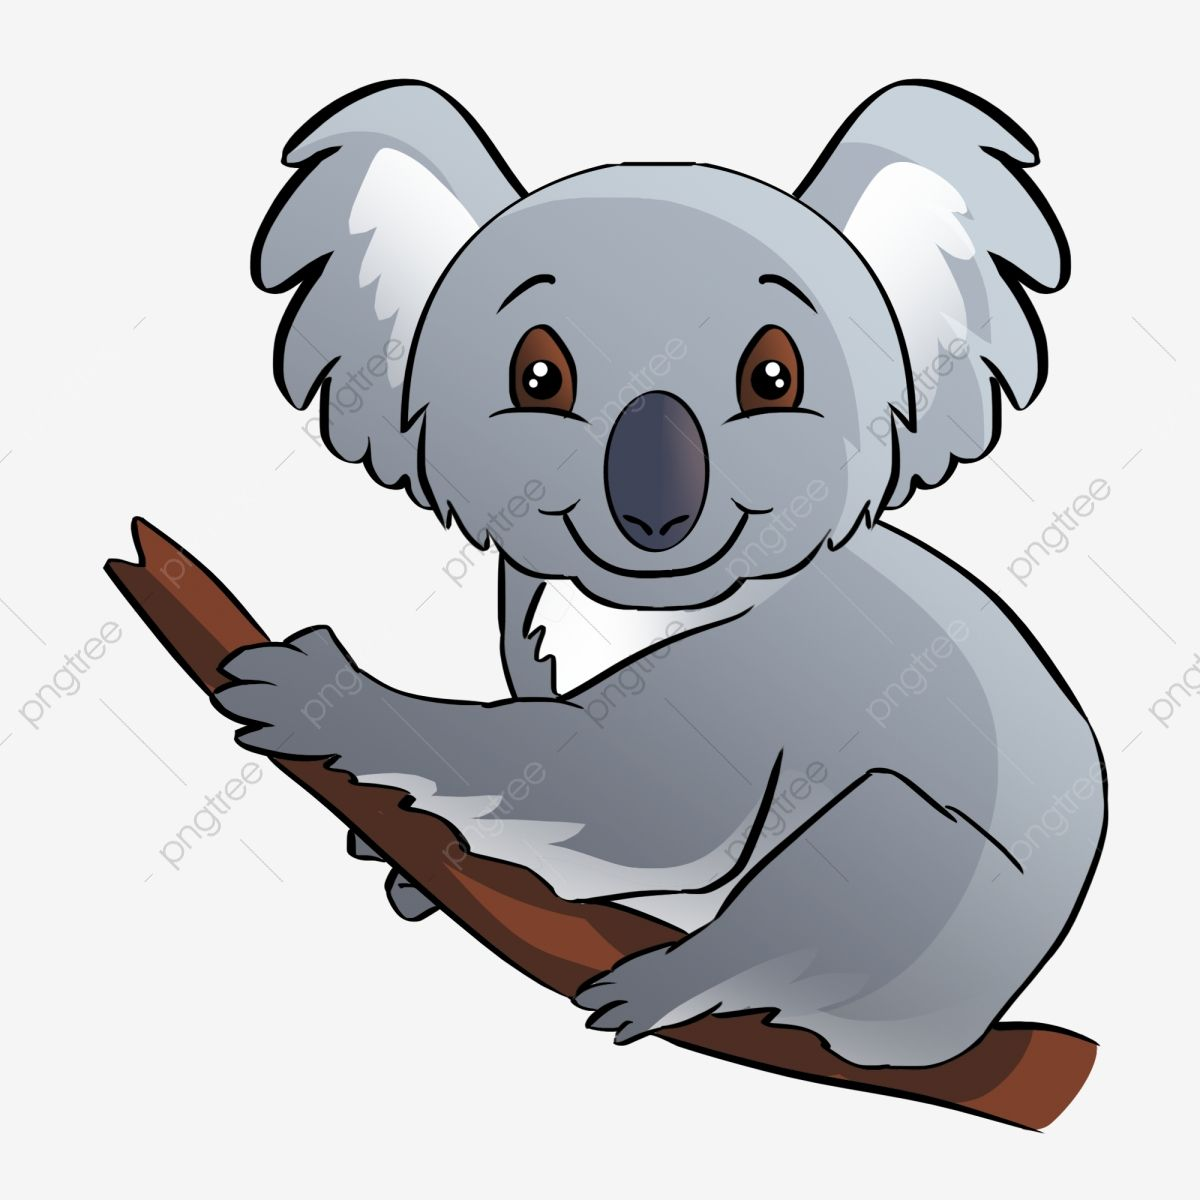 Lovely Wild Animals Koala Illustration Koala Clipart Cute Cartoon Animal Cute Animal Png Transparent Clipart Image And Psd File For Free Download Koala Illustration Cute Animal Clipart Cute Cartoon Animals